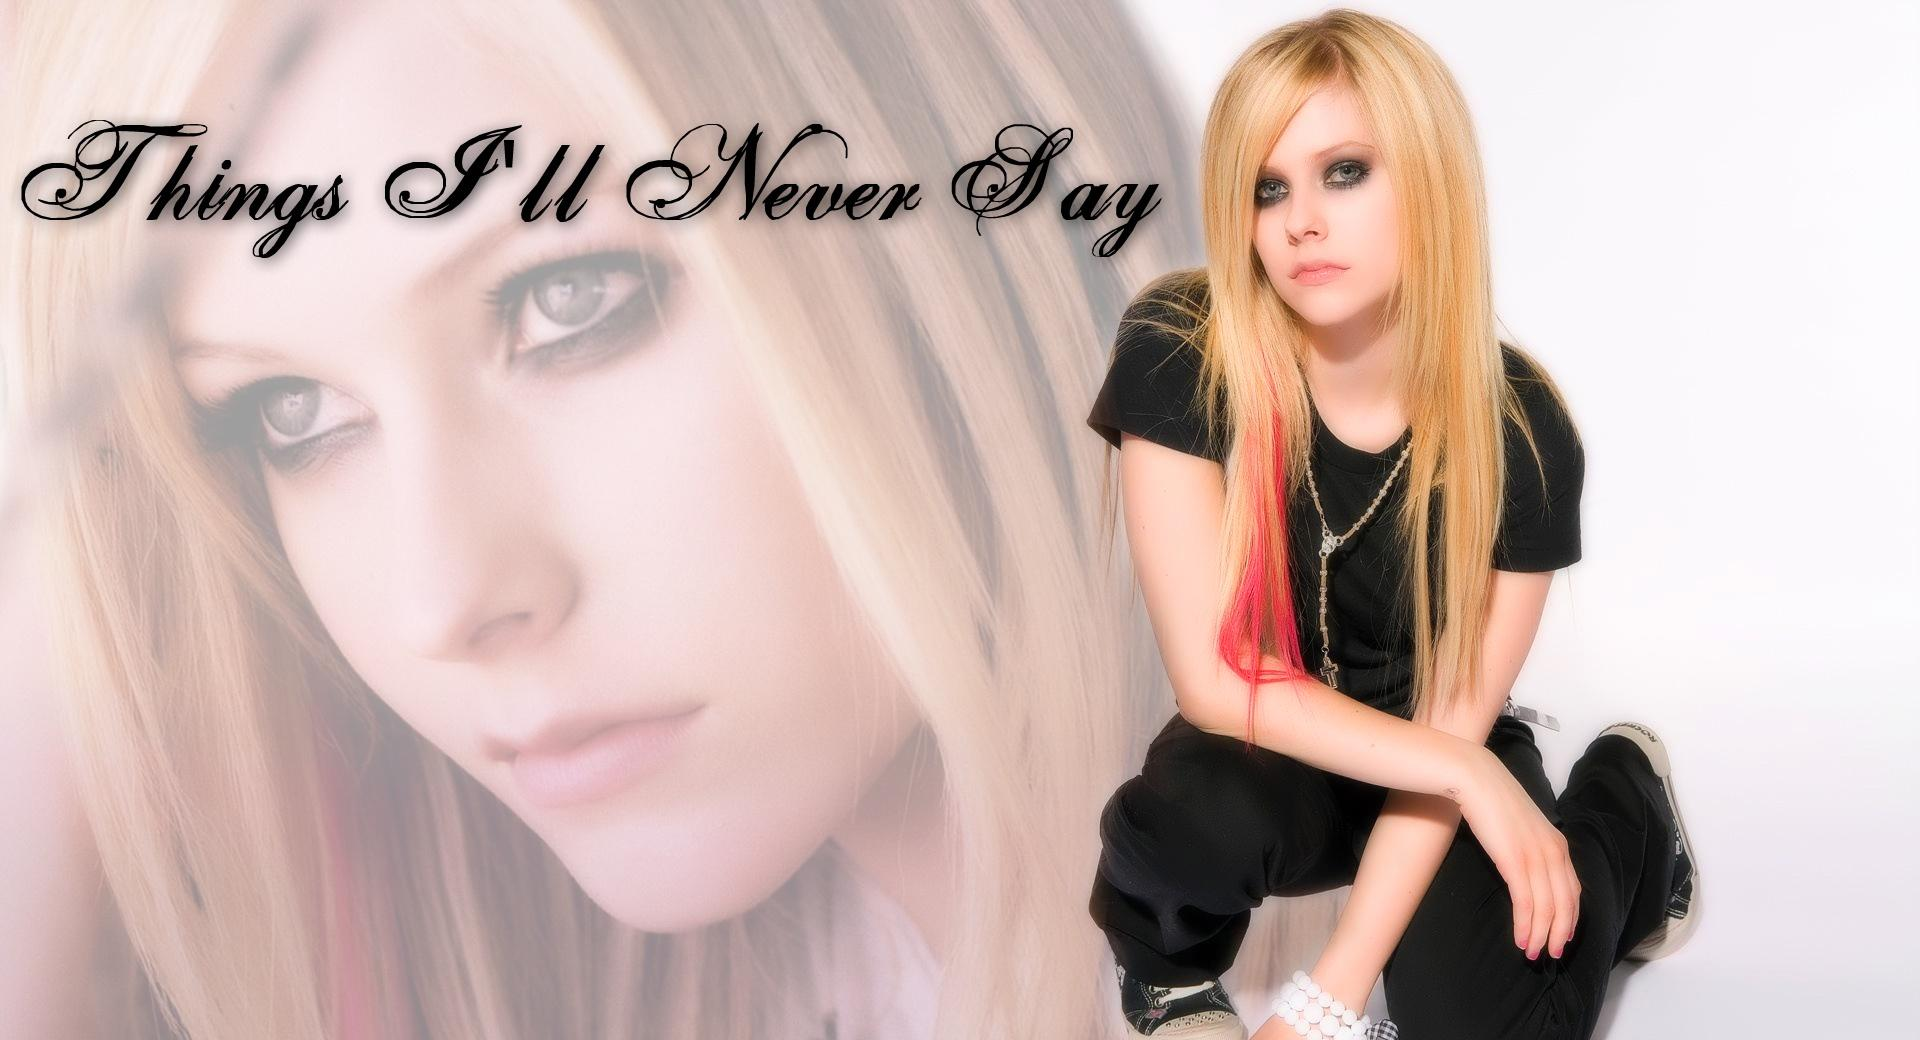 Avril Lavigne Things Ill Never Say wallpapers HD quality